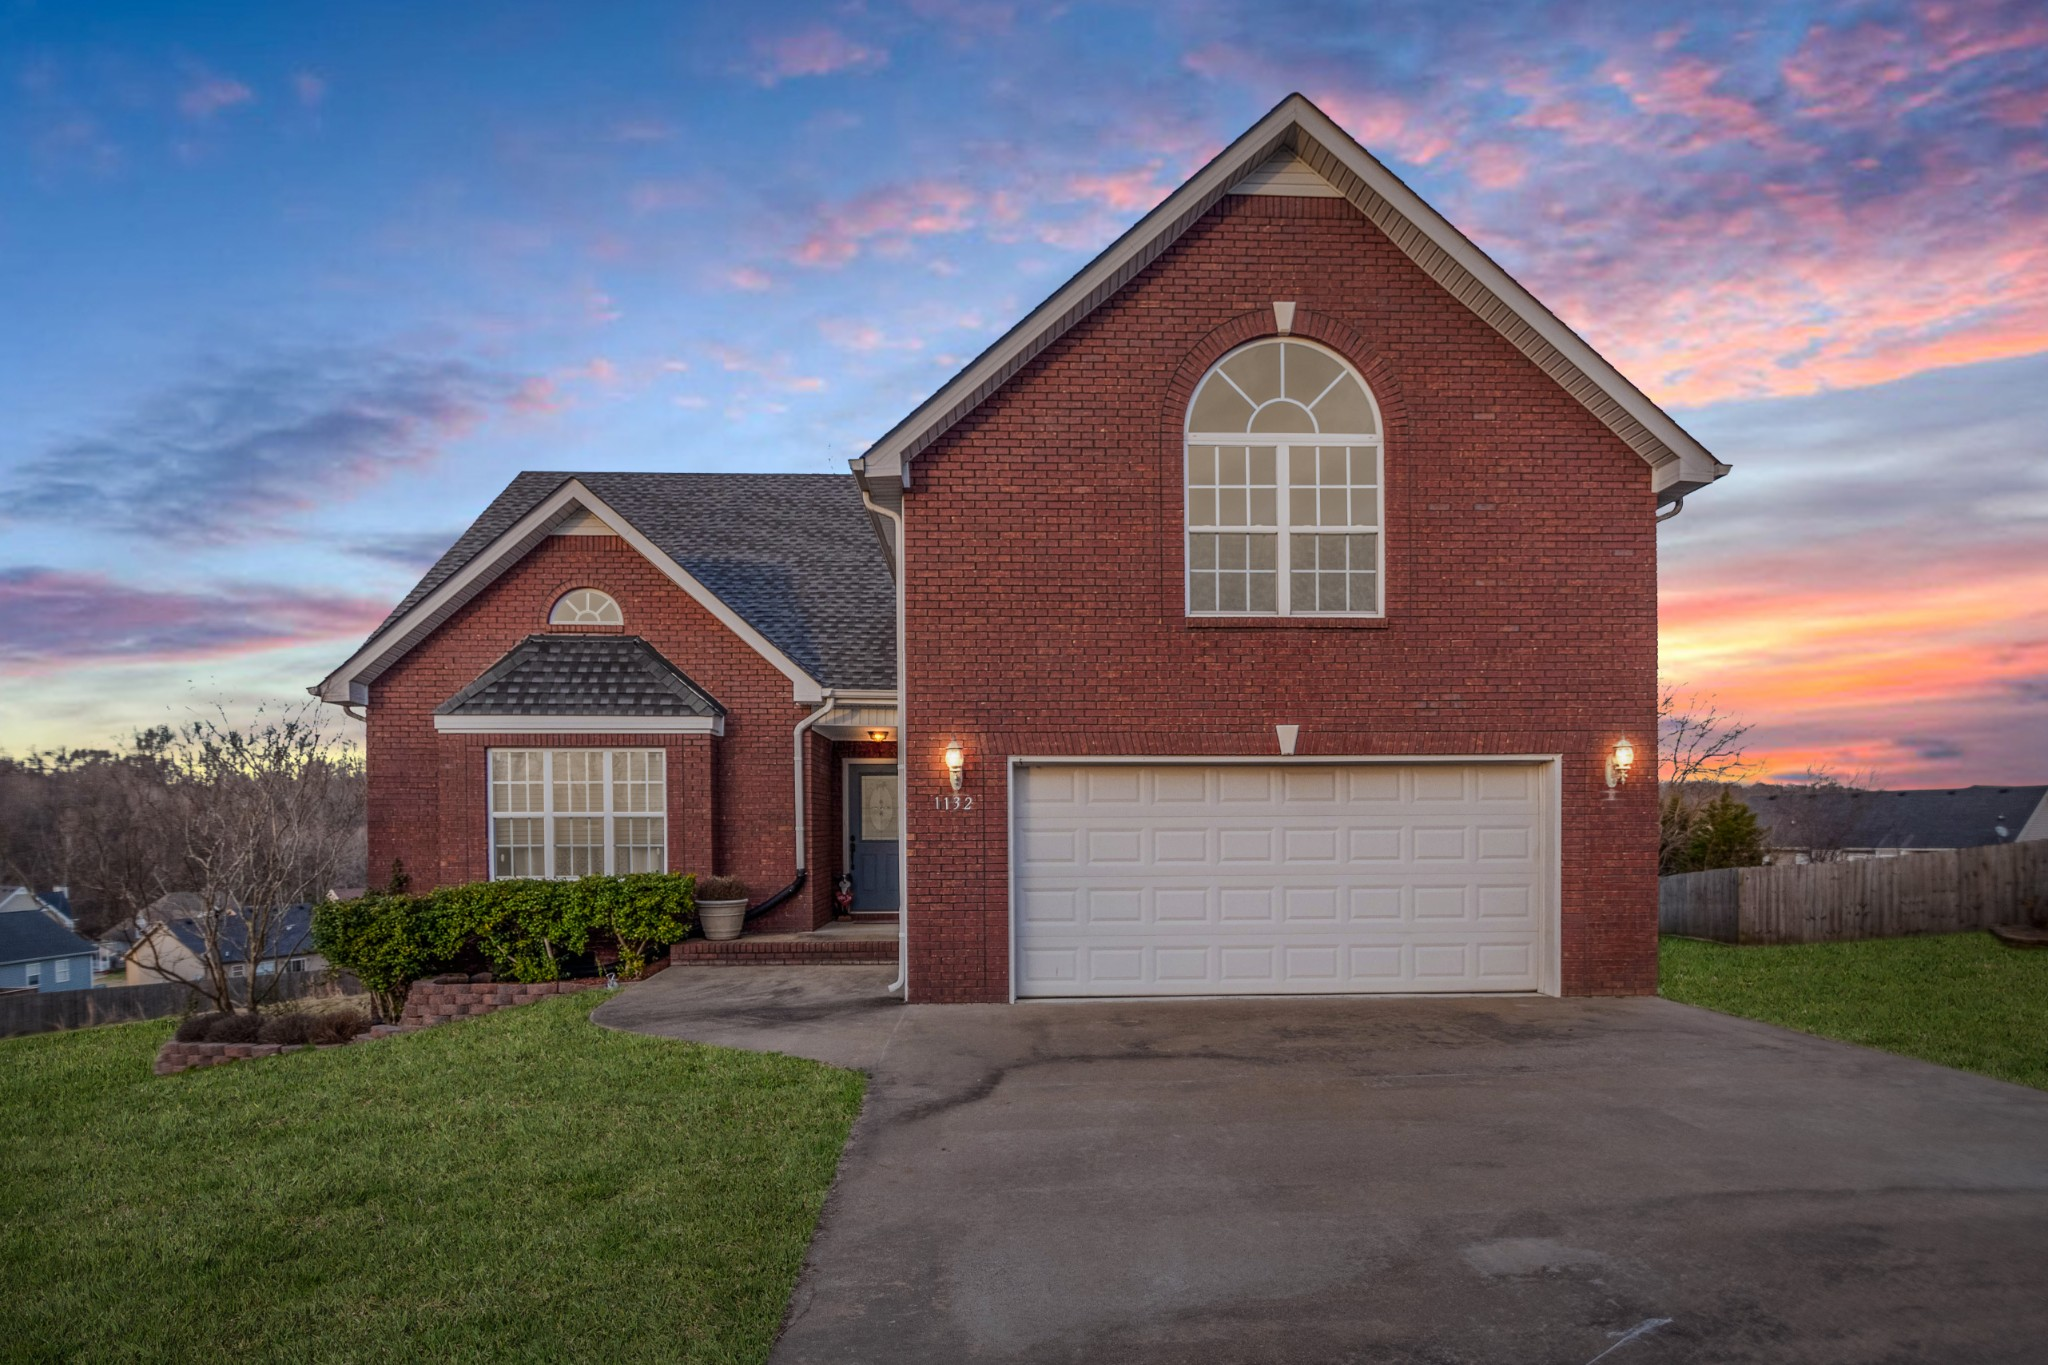 1132 Channelview Ct, Clarksville, TN 37040 - Clarksville, TN real estate listing